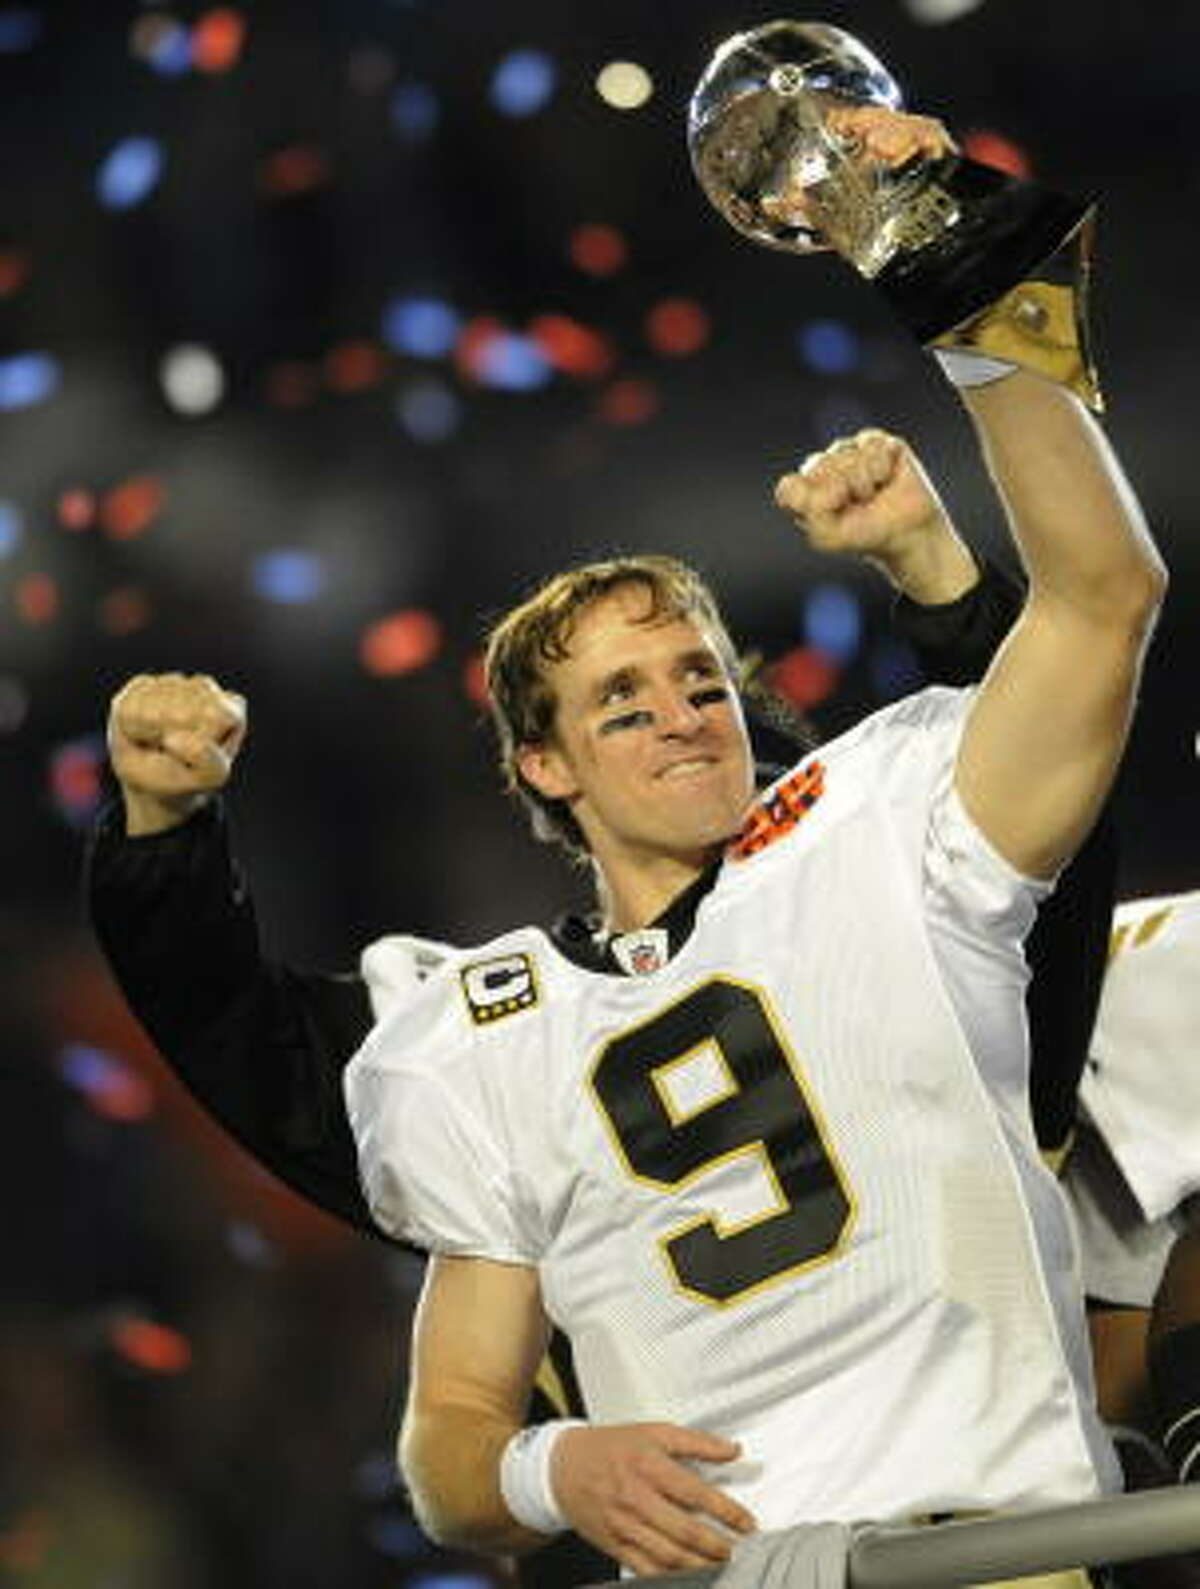 New Orleans Saints quarterback Drew Brees celebrates Sunday after a Super Bowl victory against the Indianapolis Colts.